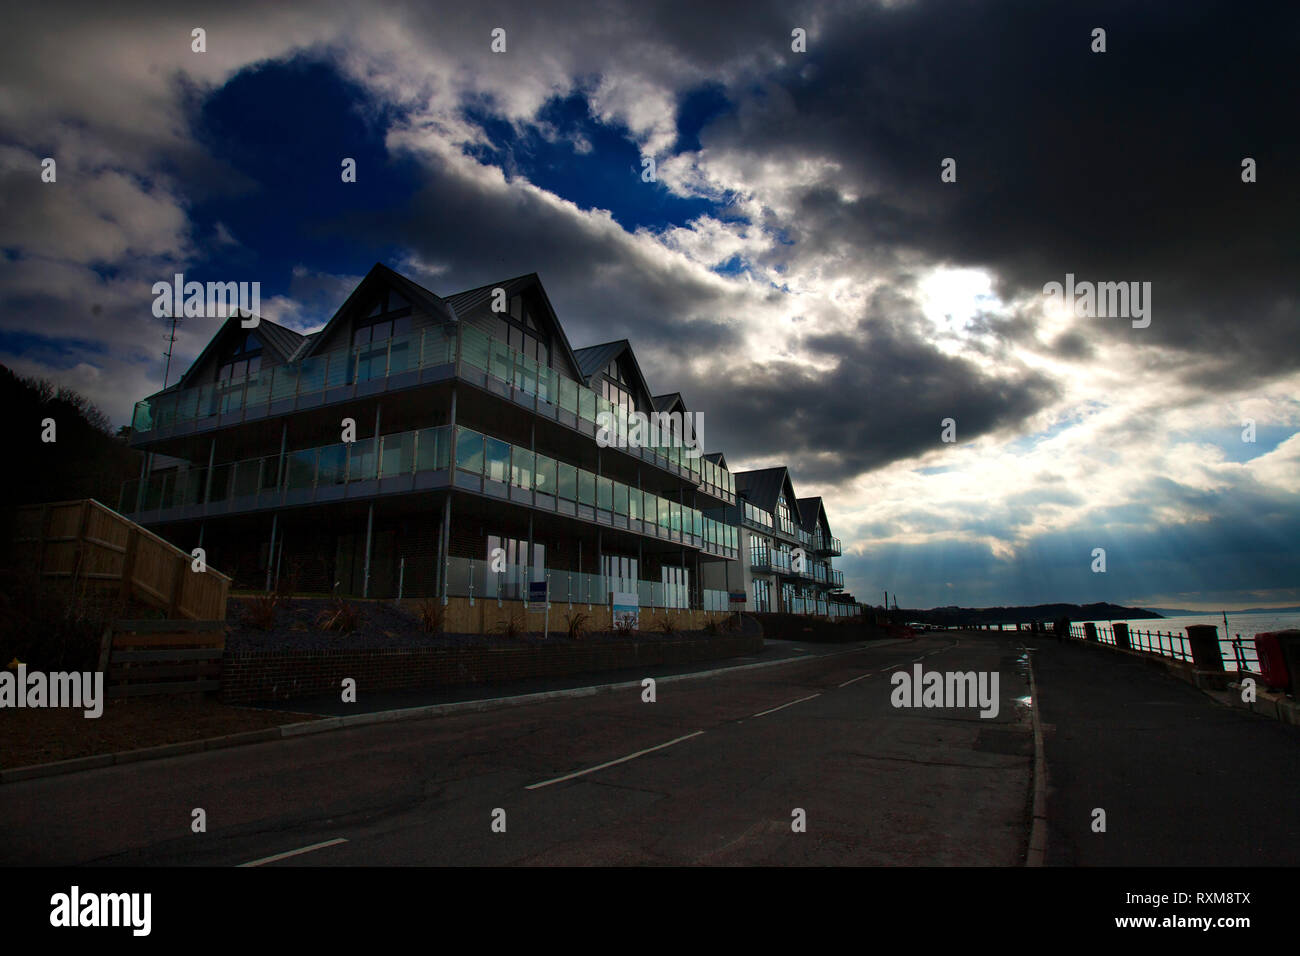 expensive,block,of,seaside,apartments,with,glass,balcony,balconies,dramatic,skies,clouds,Gurnard,Isle of Wight,England, UK, - Stock Image